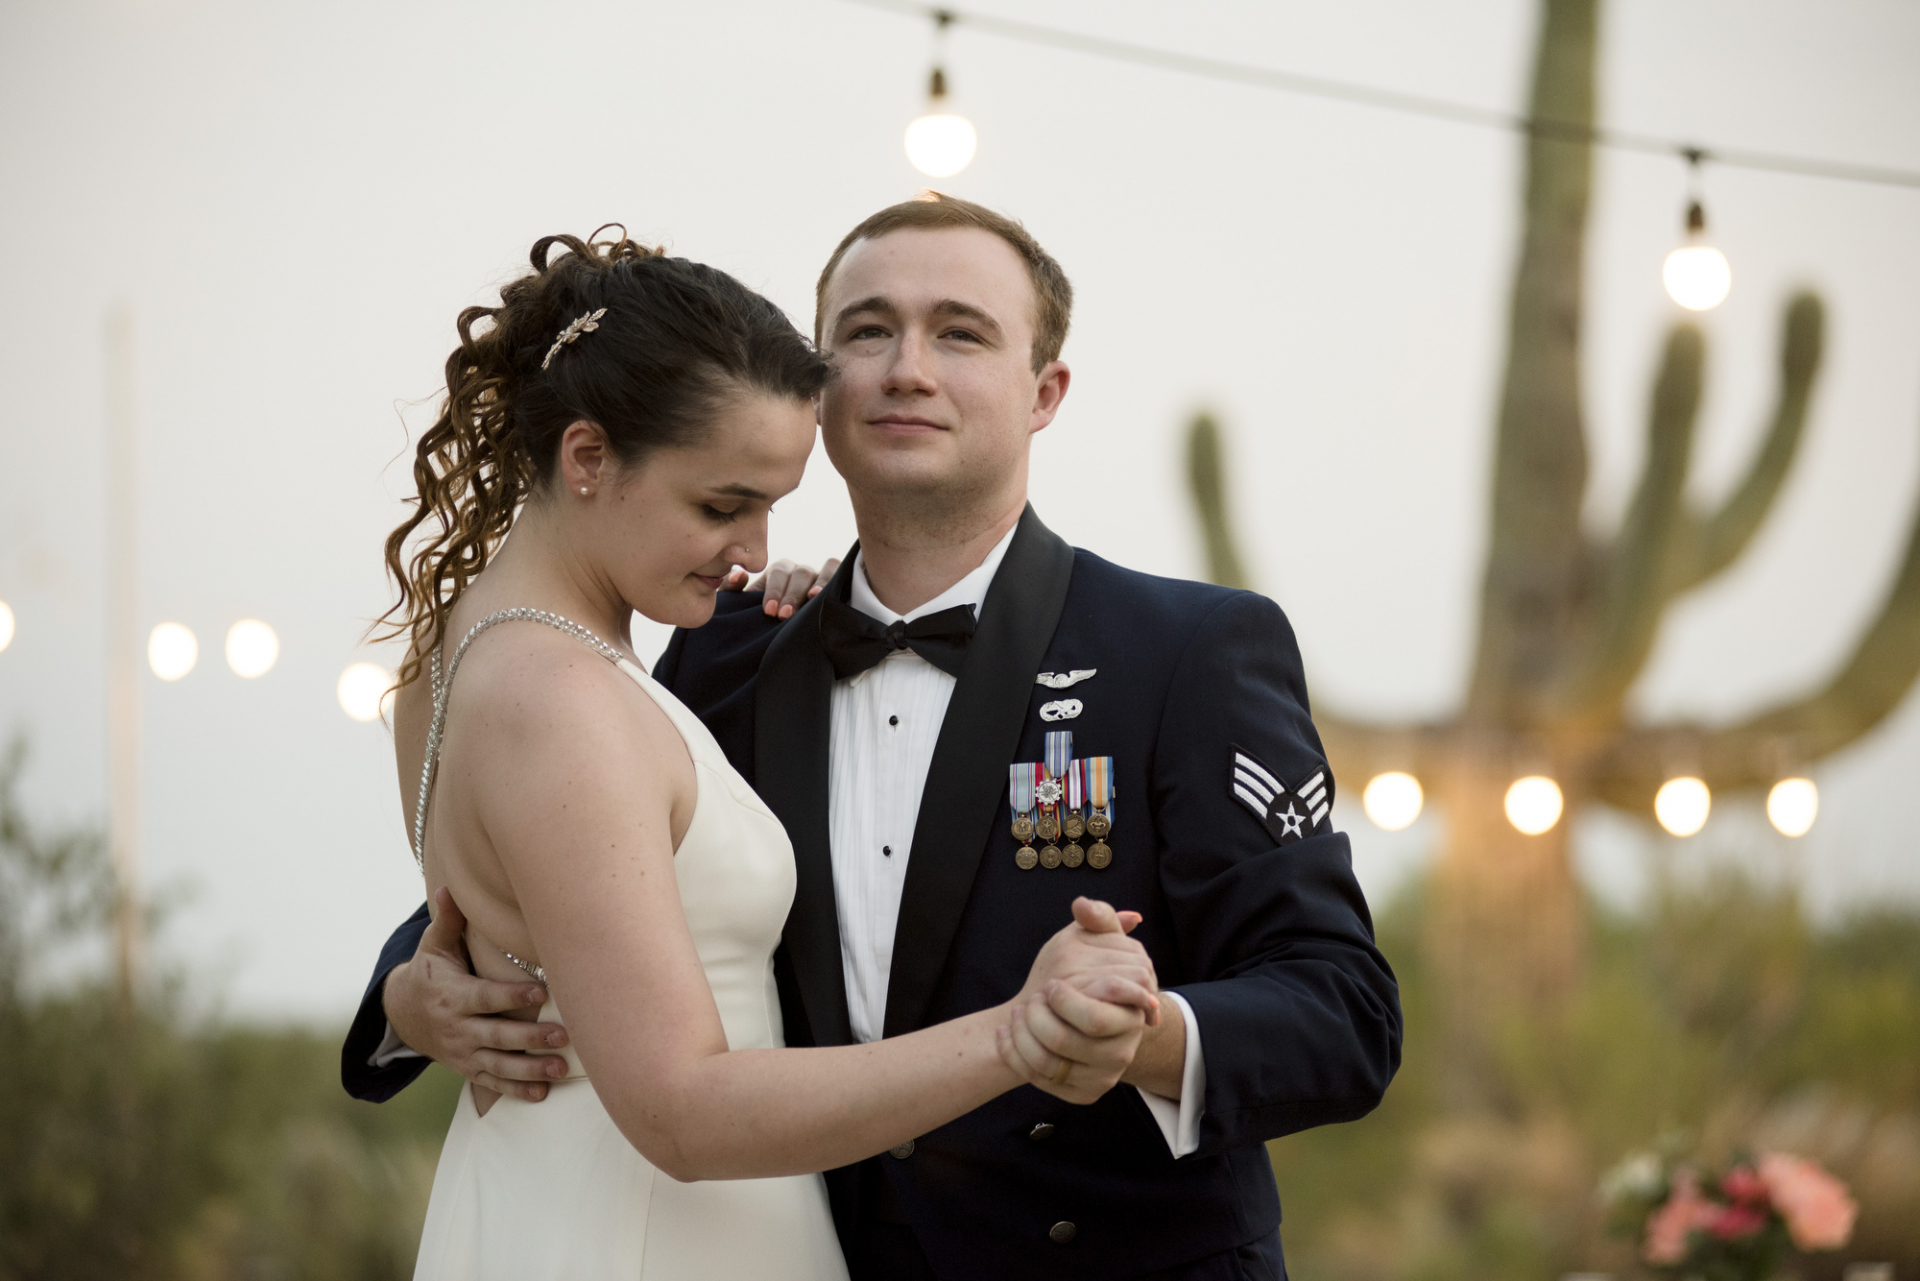 AZ Rental Home Wedding Reception Picture | The couple shares their first dance together